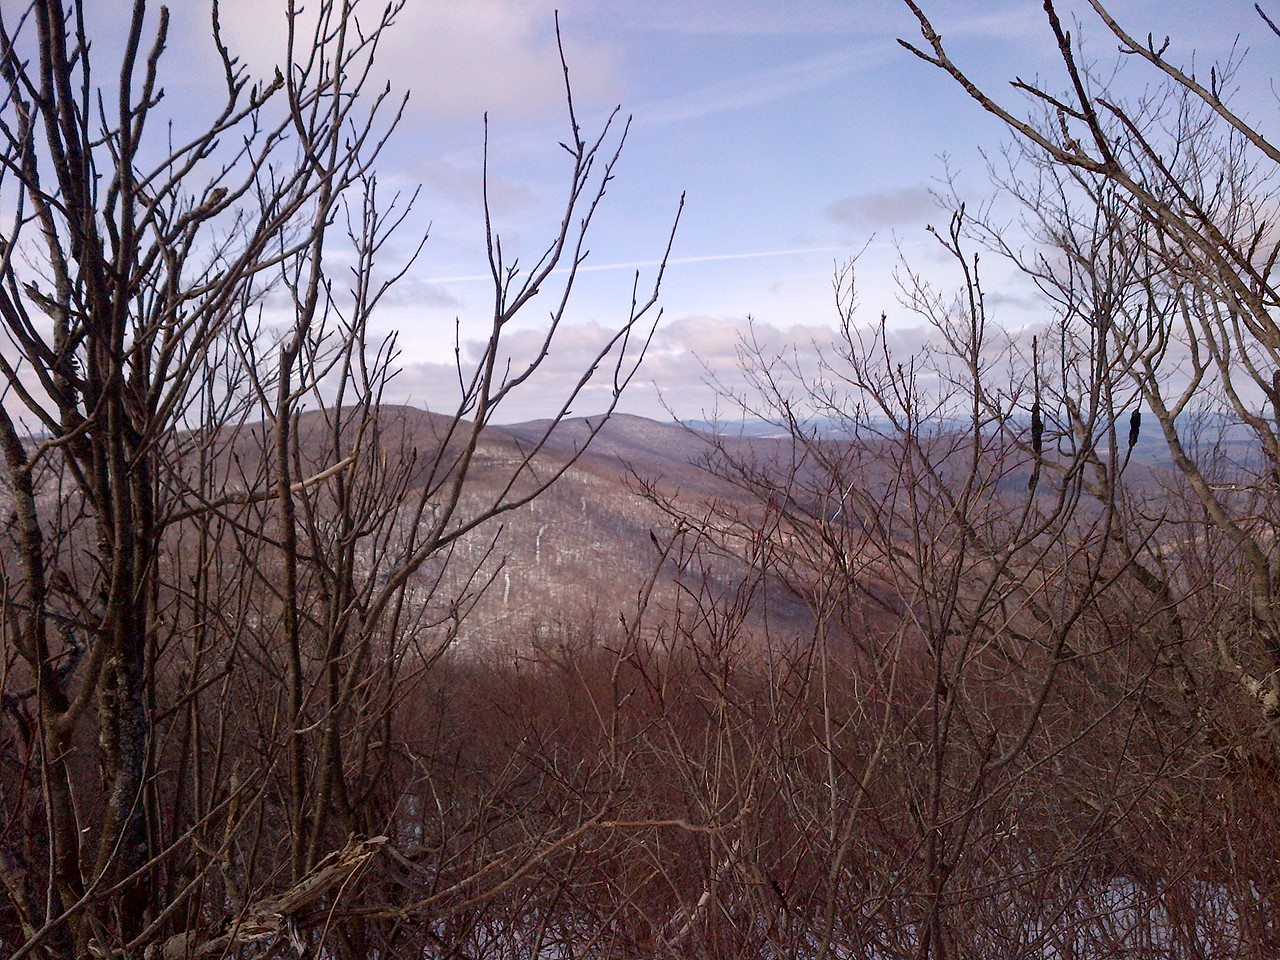 A view of Bearpen mountain from the summit of Vly.